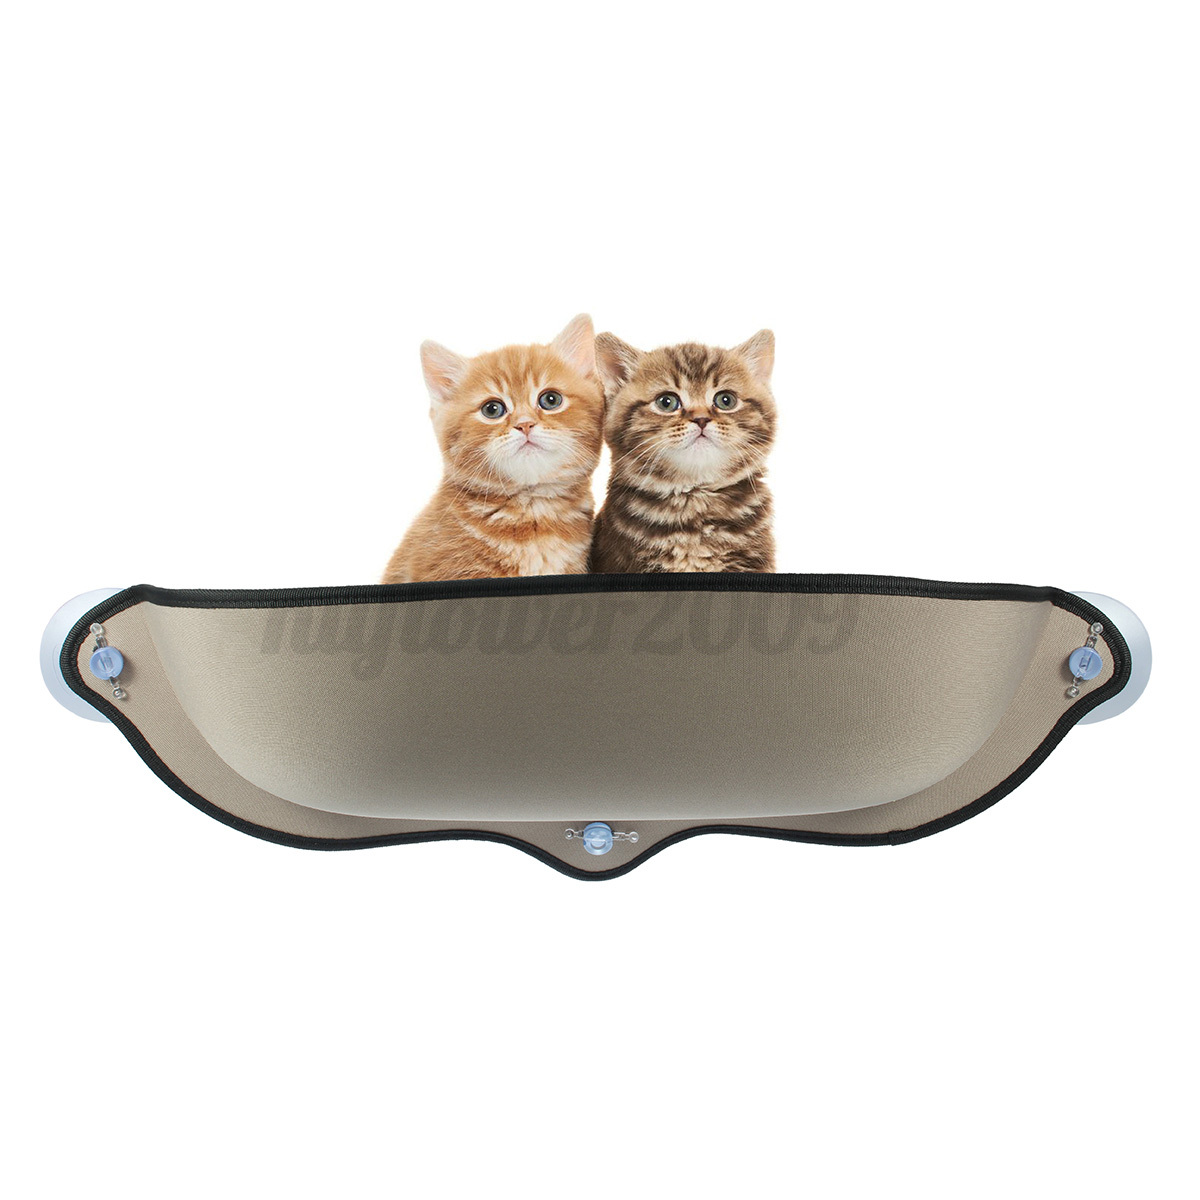 Cat Padded Window Perch Seat Bed Hammock Car Suction Cup